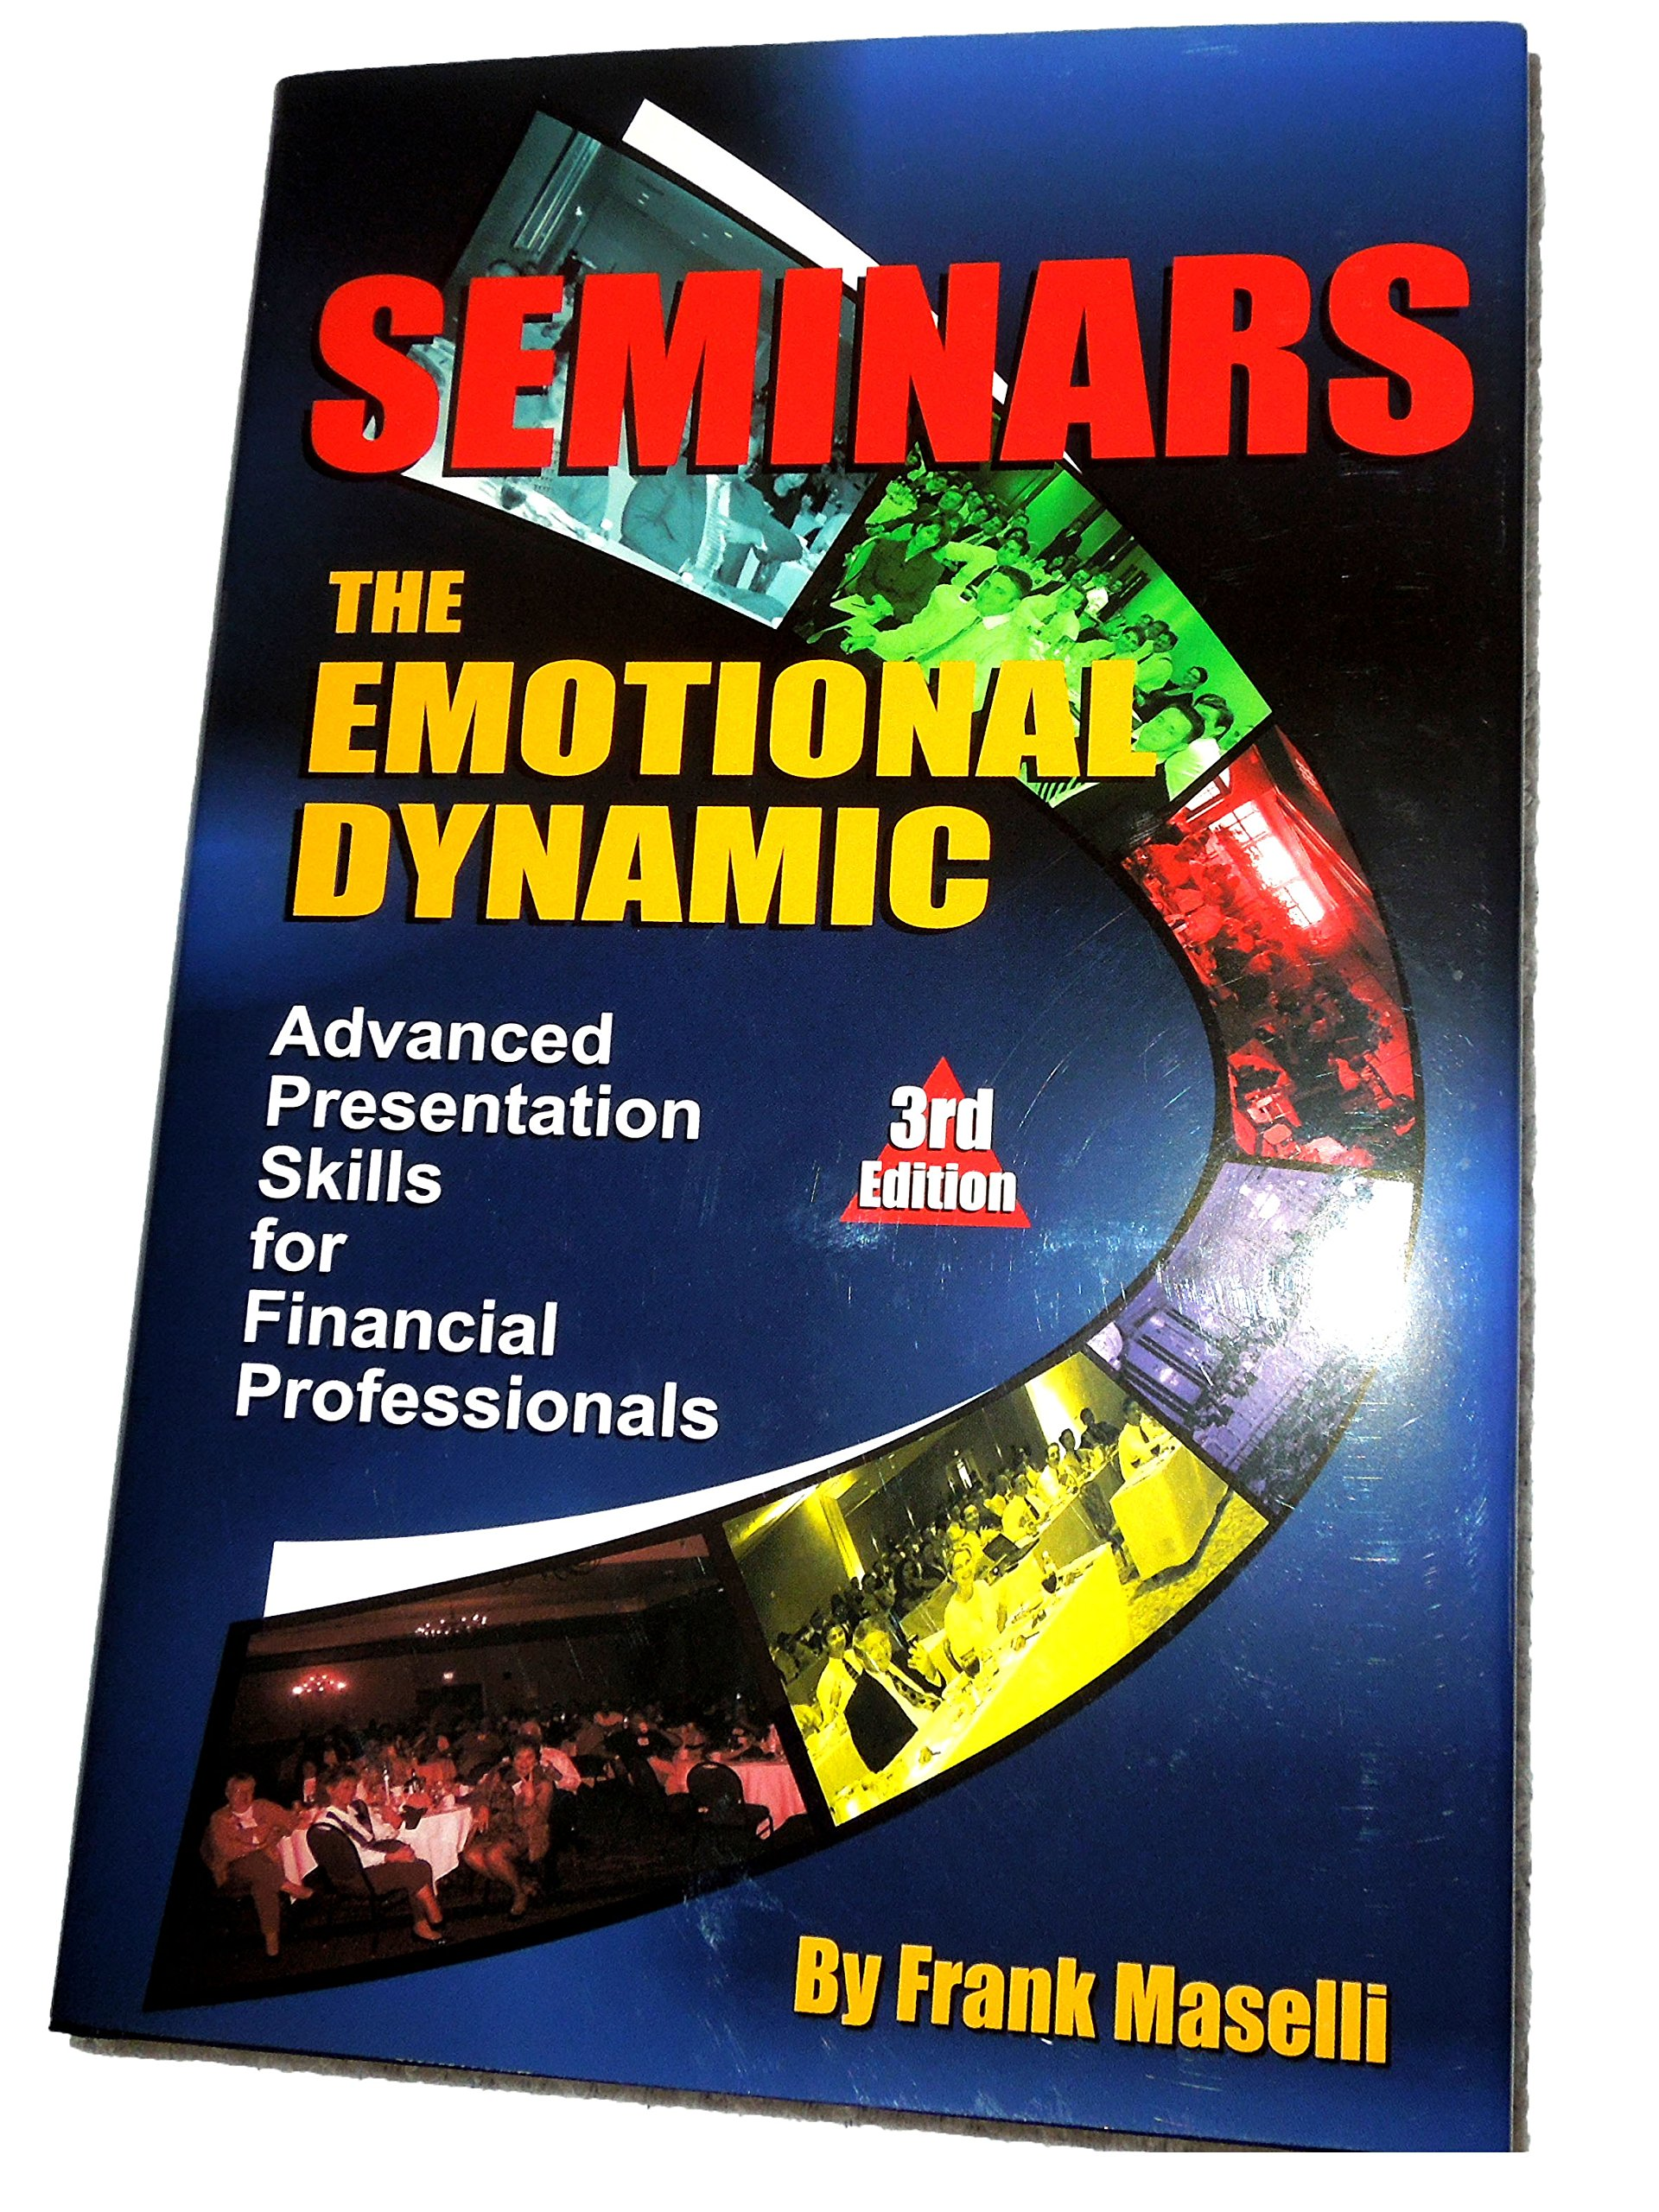 Download Seminars: The Emotional Dynamic - Advanced Presentation Skills for Financial Professionals, 3rd Edition ebook